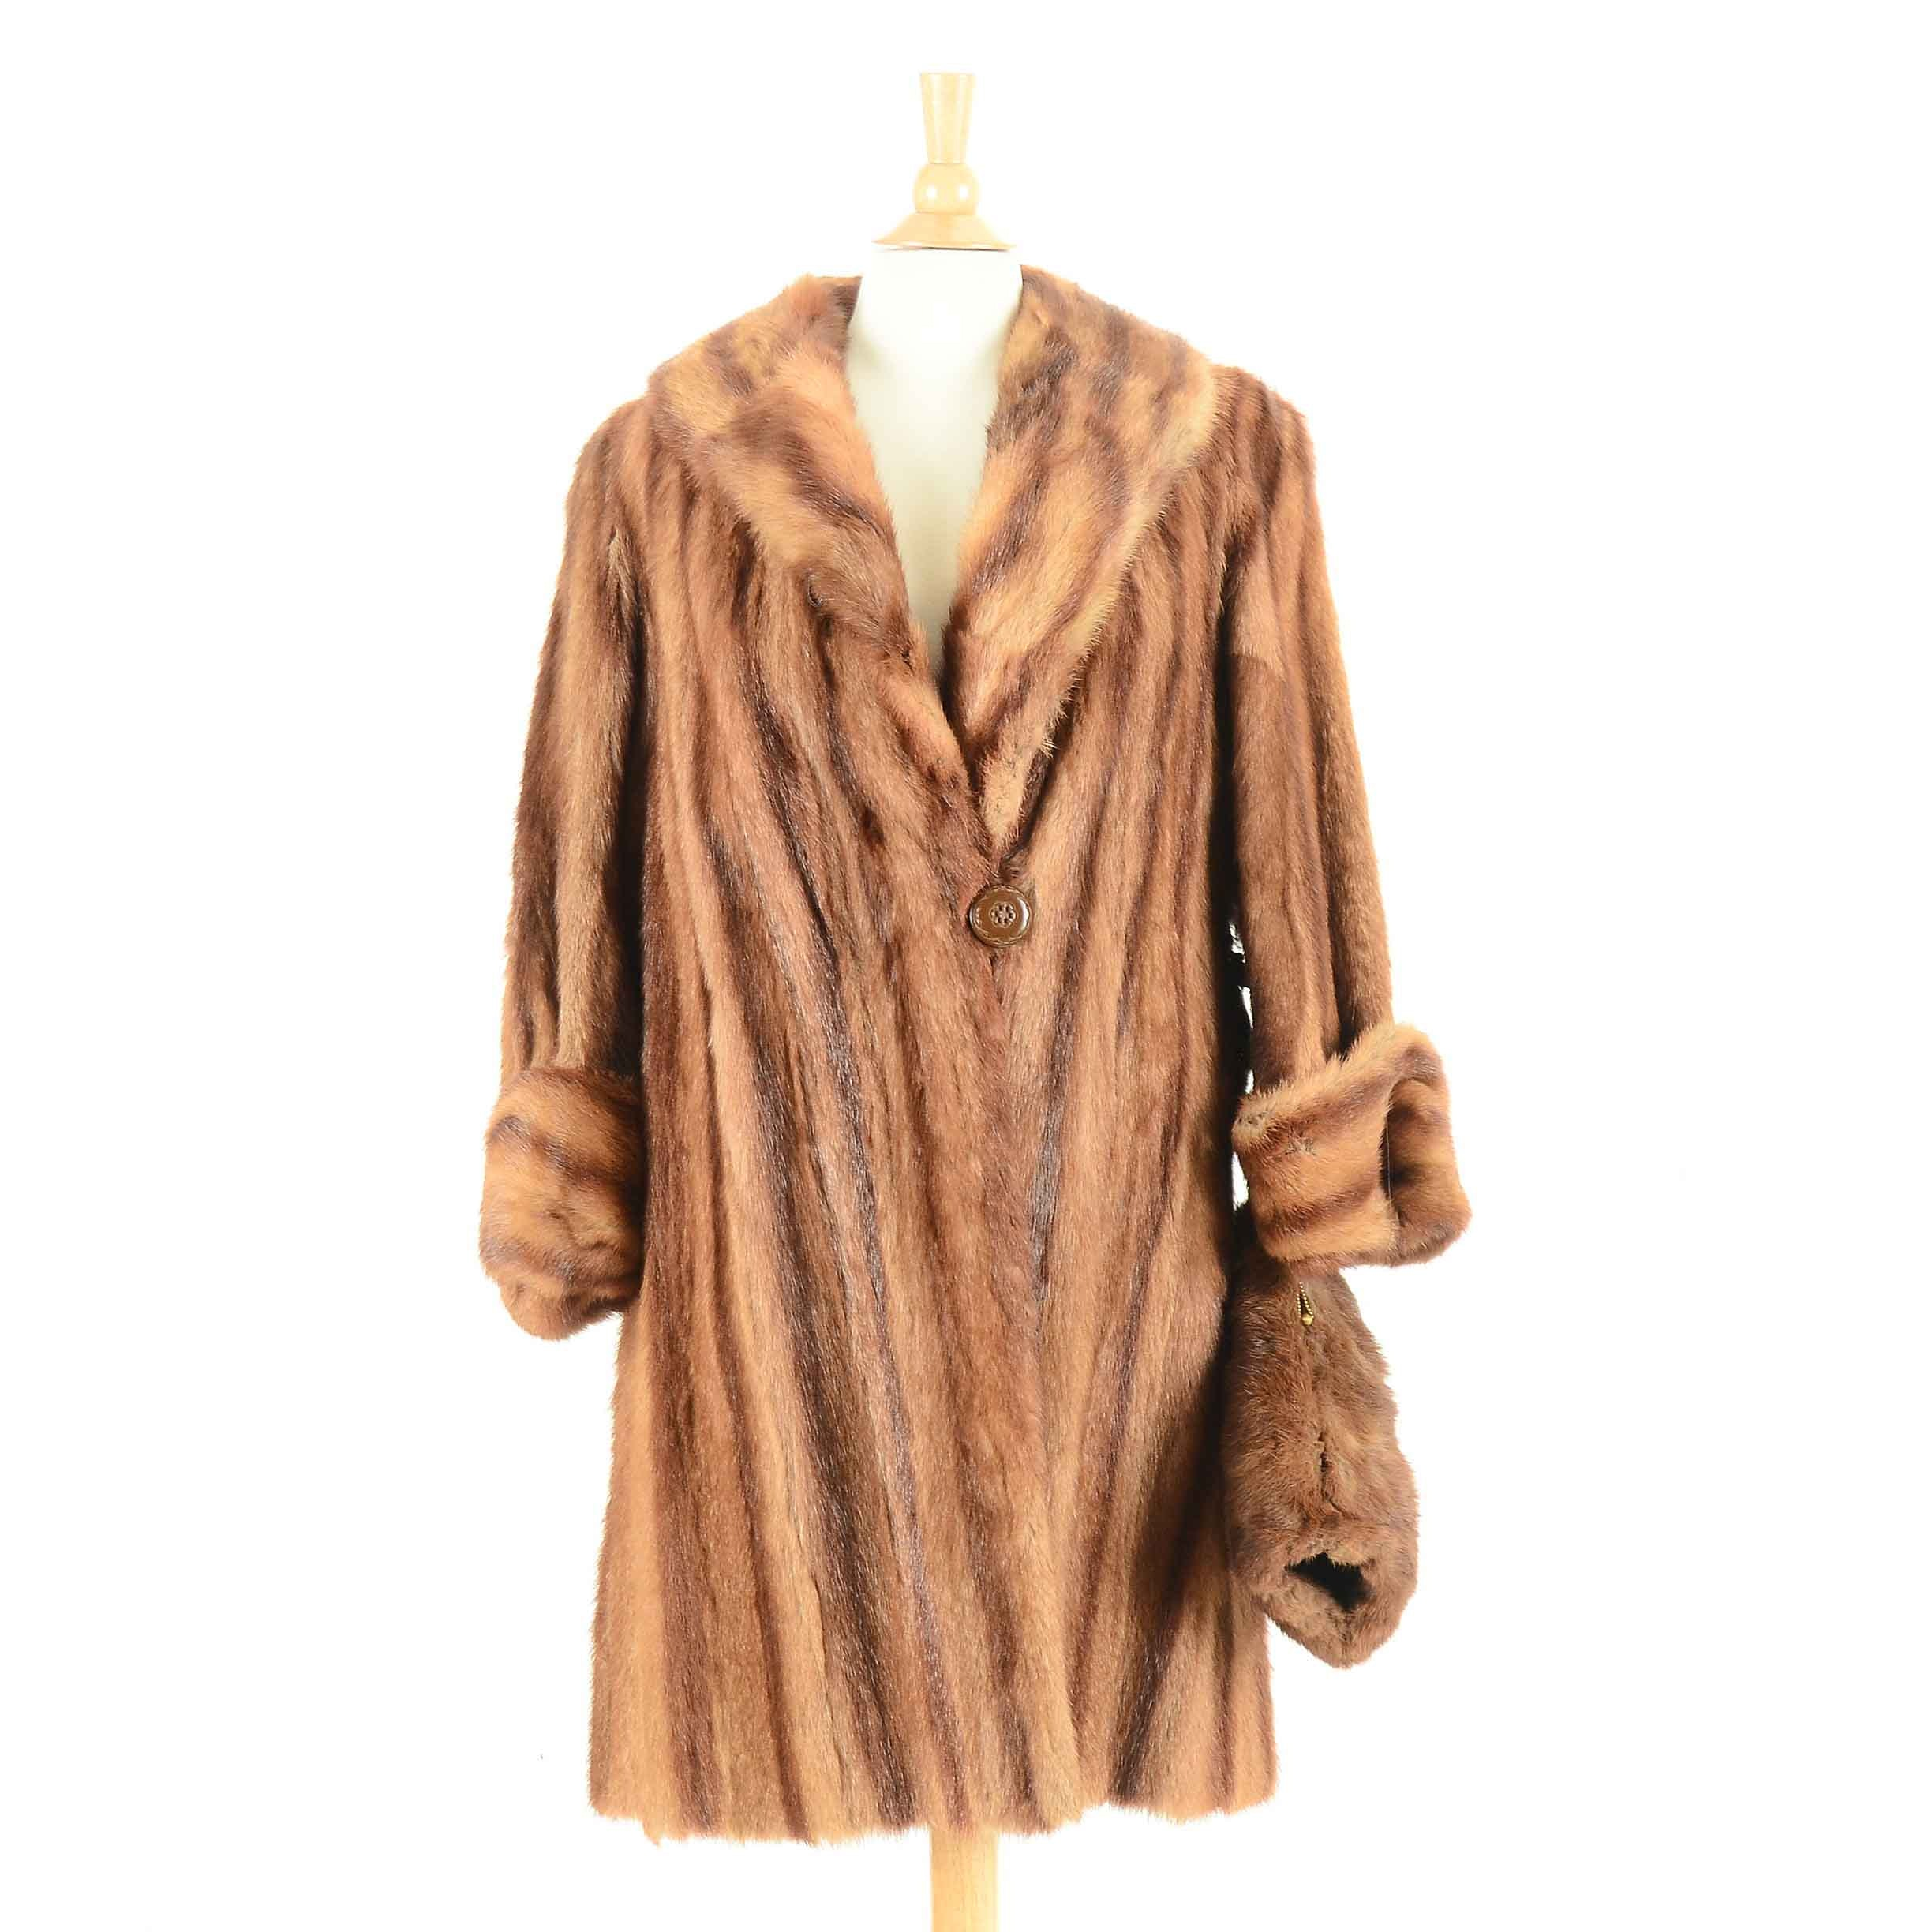 Vintage Marmot Fur Coat and Dyed Fur Muff